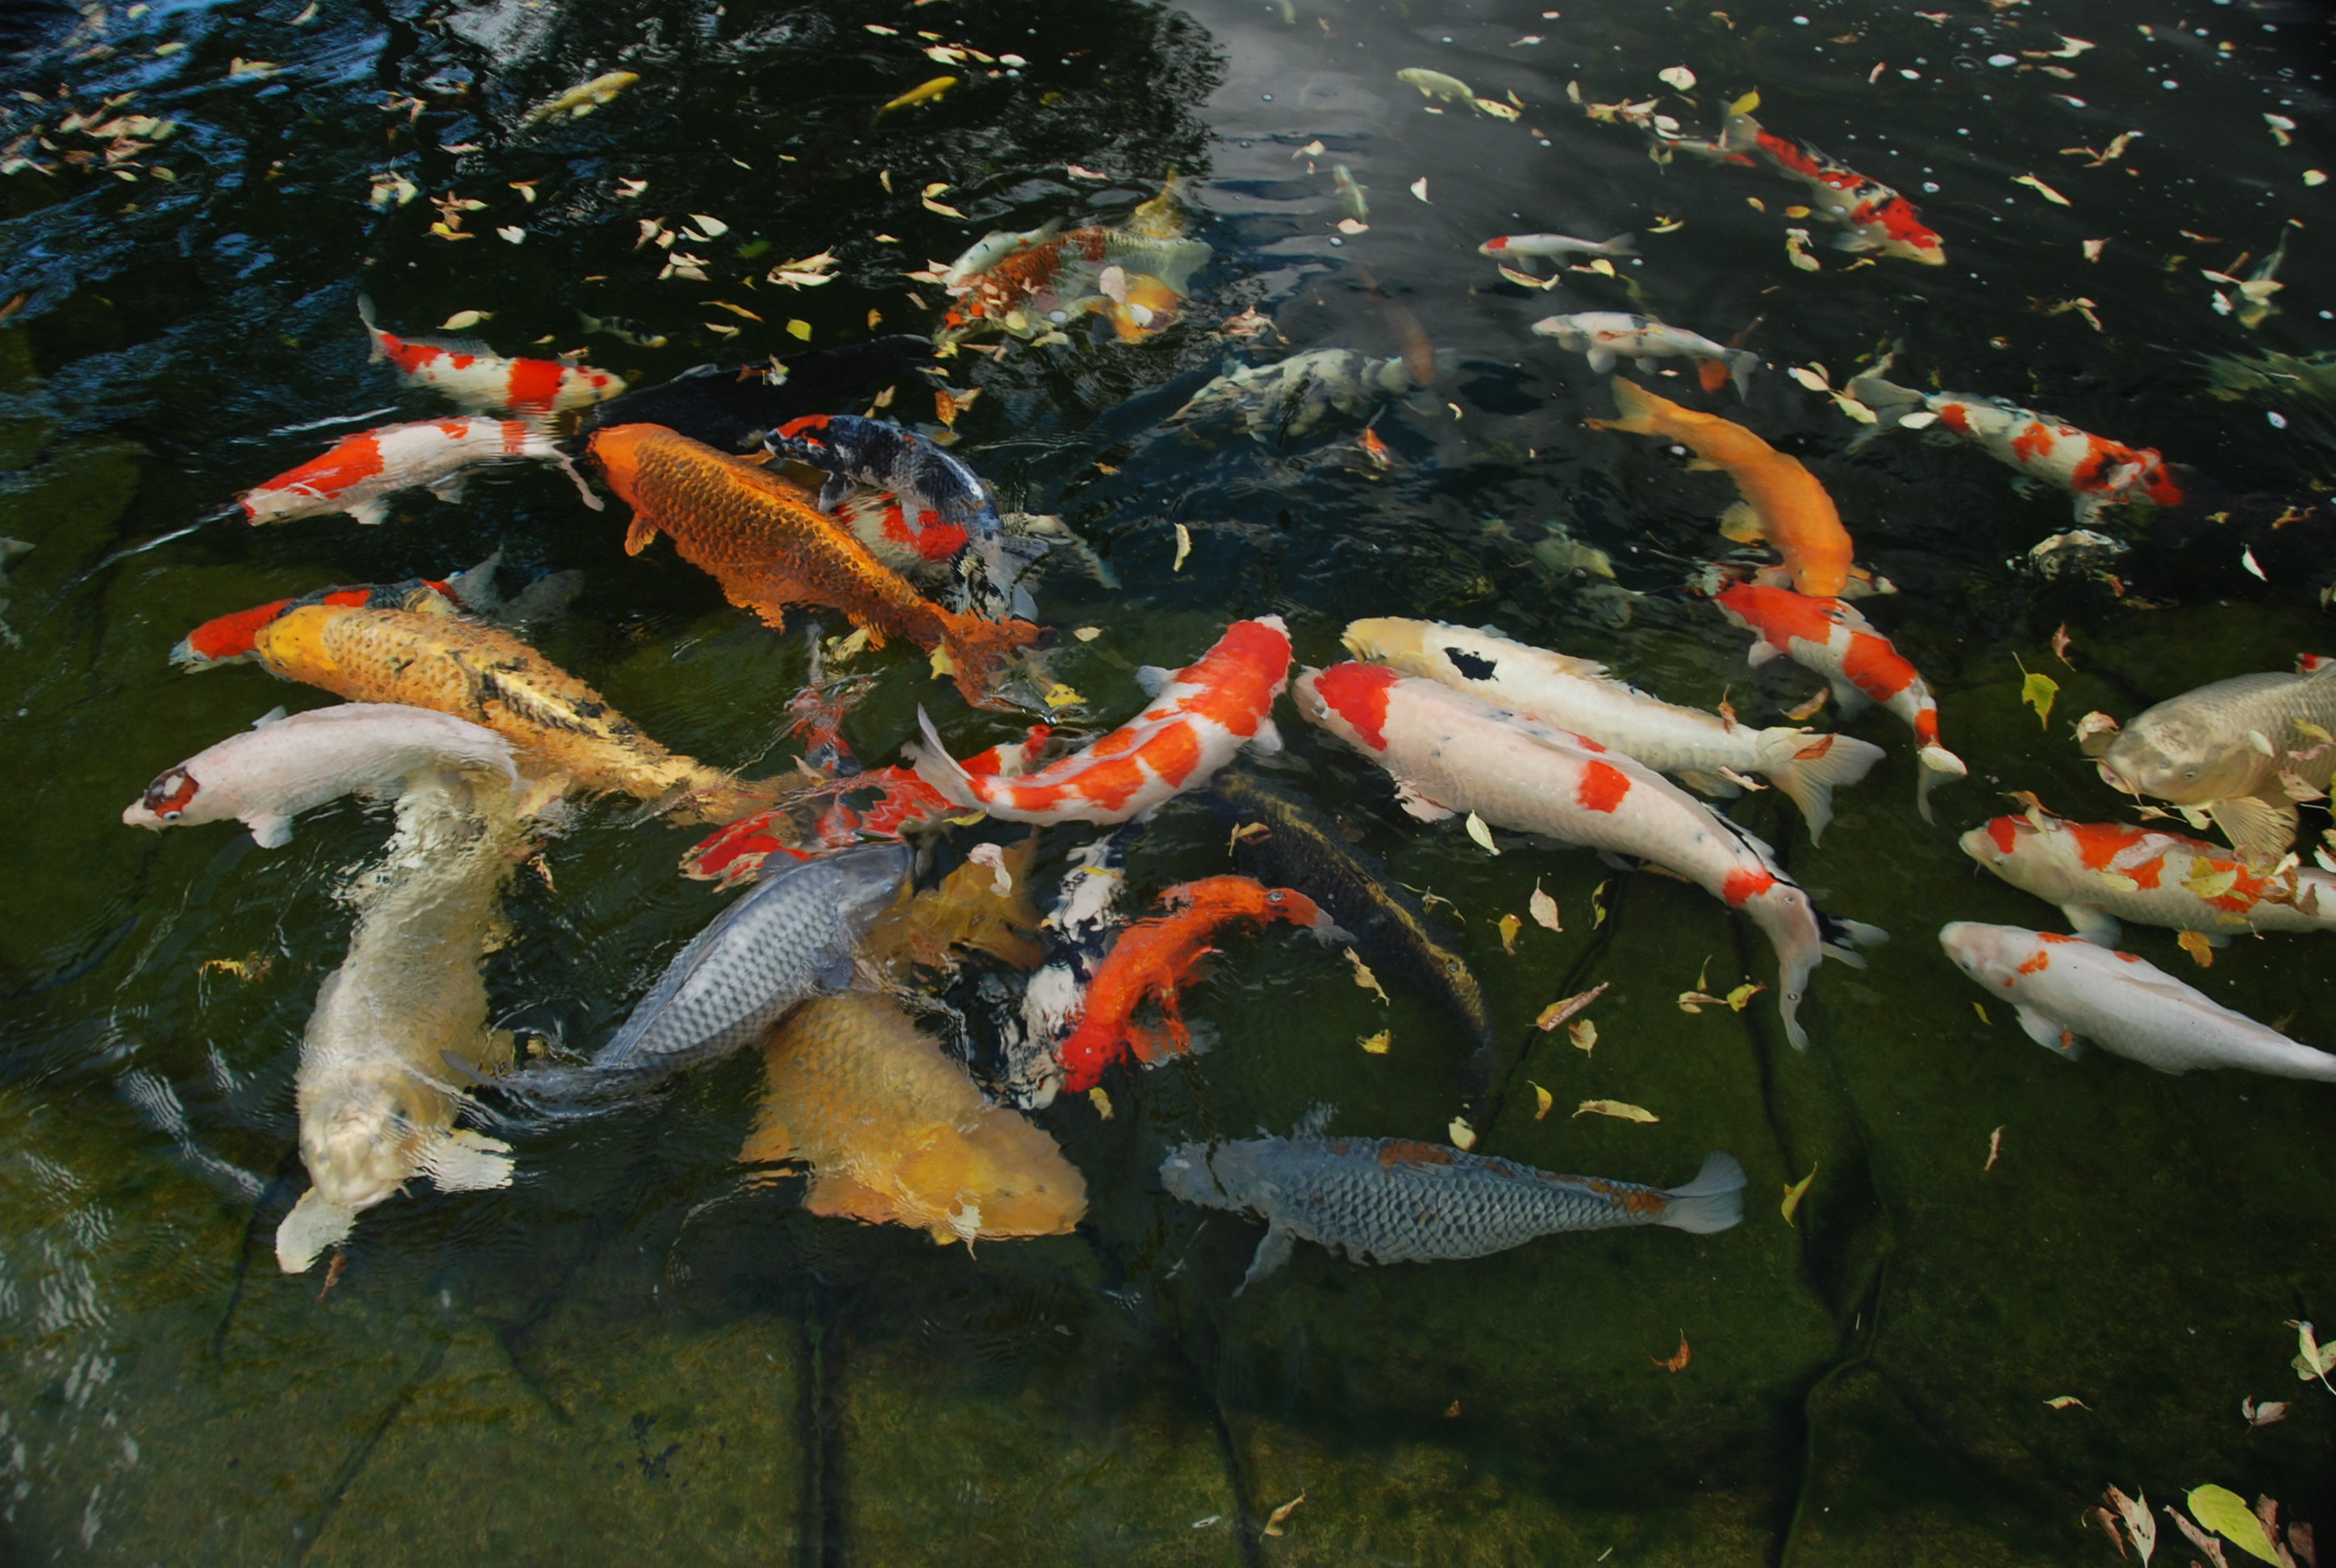 Koi acres imported japanese koi online shopping for koi for Japan koi fish pond